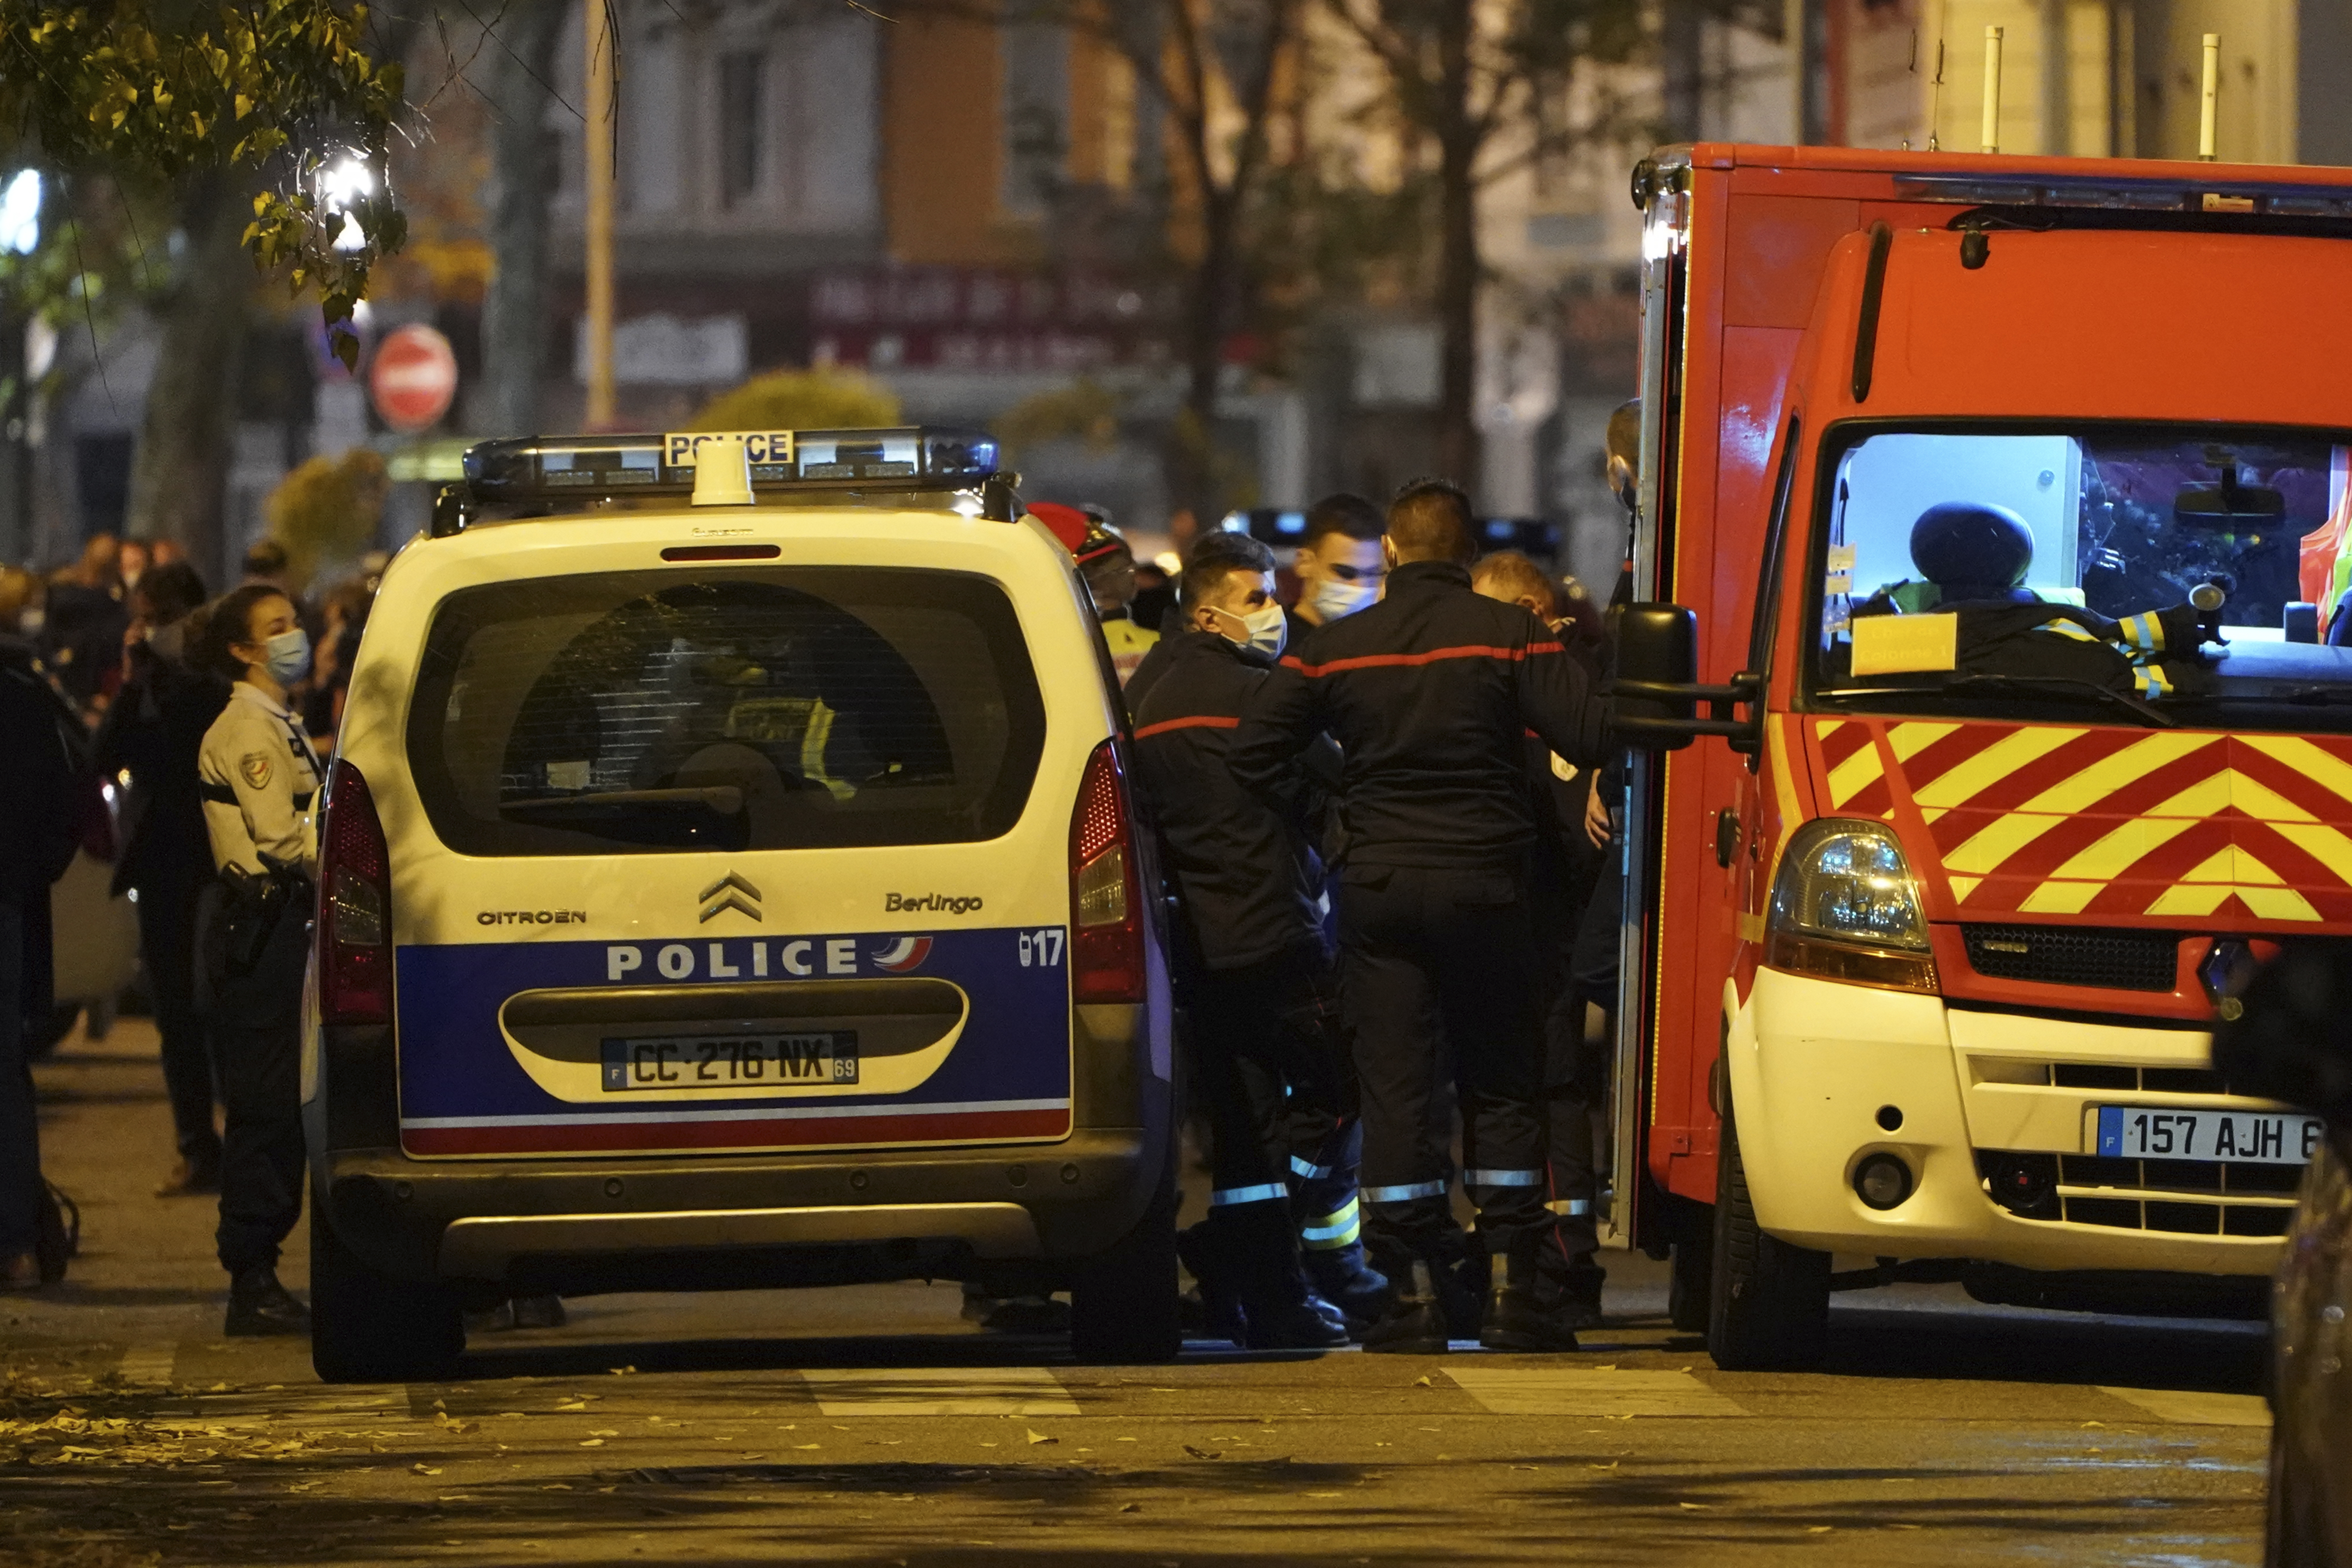 Police officers and rescue workers block the access to the scene after a Greek Orthodox priest was shot  while he was closing his church in the city of Lyon, central France, on Saturday Oct.31, 2020.